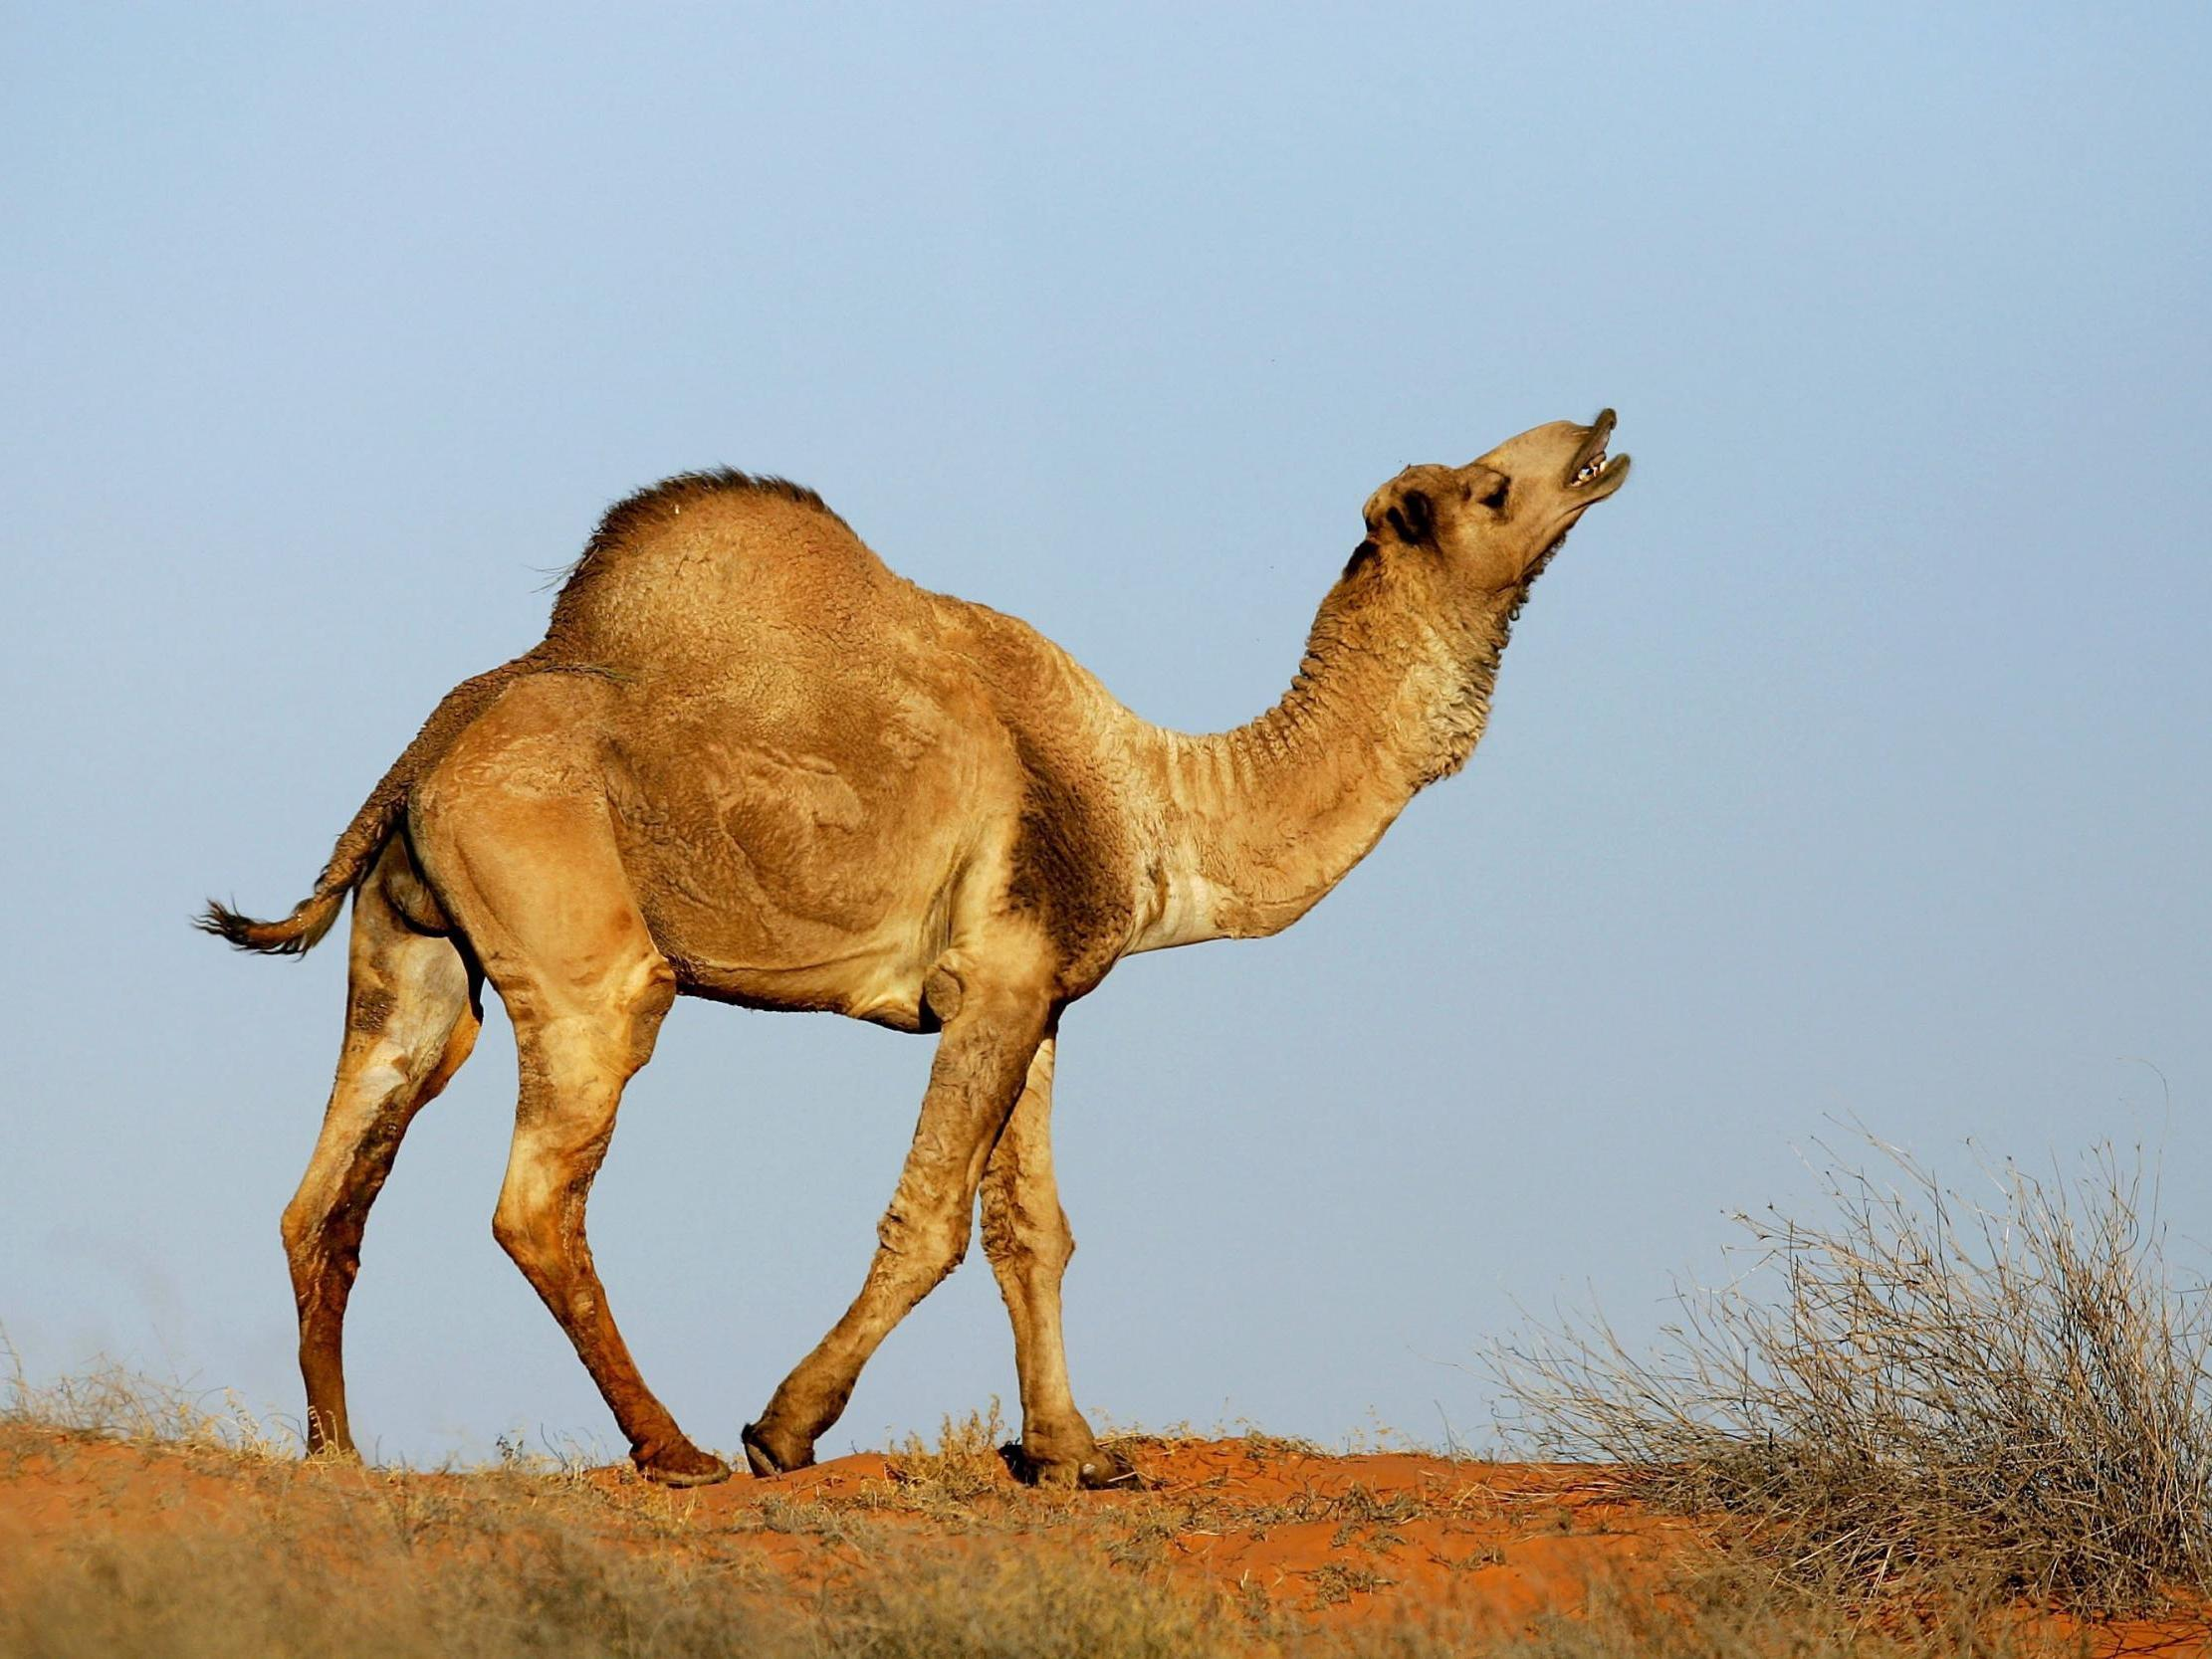 10,000 camels in Australia to be shot because they drink too much water